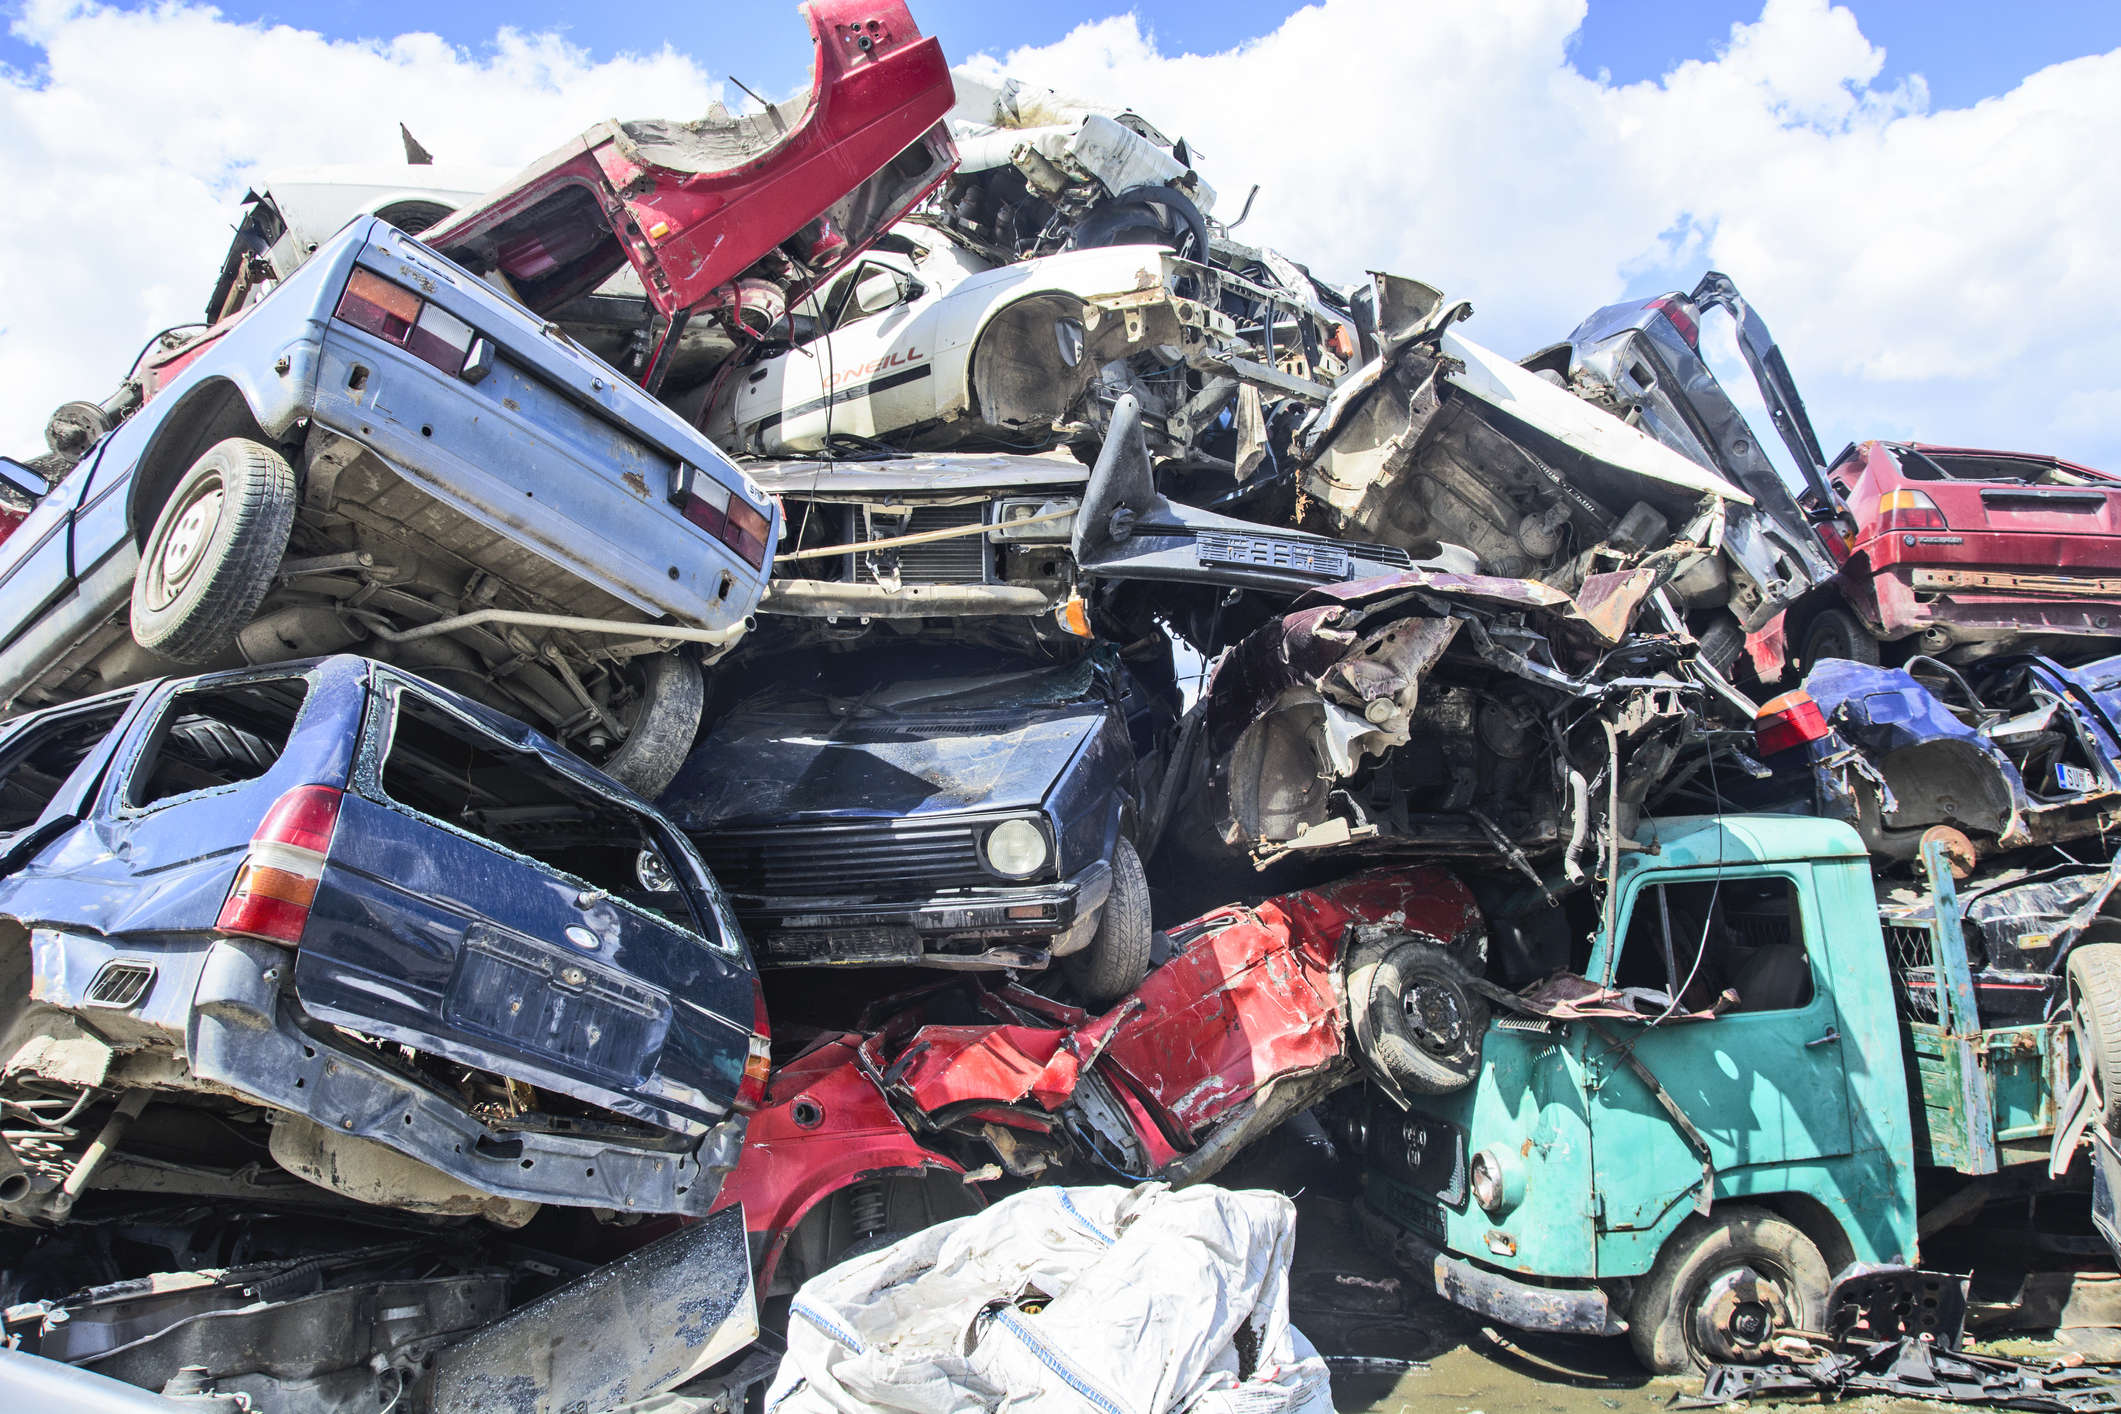 Currently, ~0.5 lakh trucks are scrapped each year, a number corroborated via industry interactions.